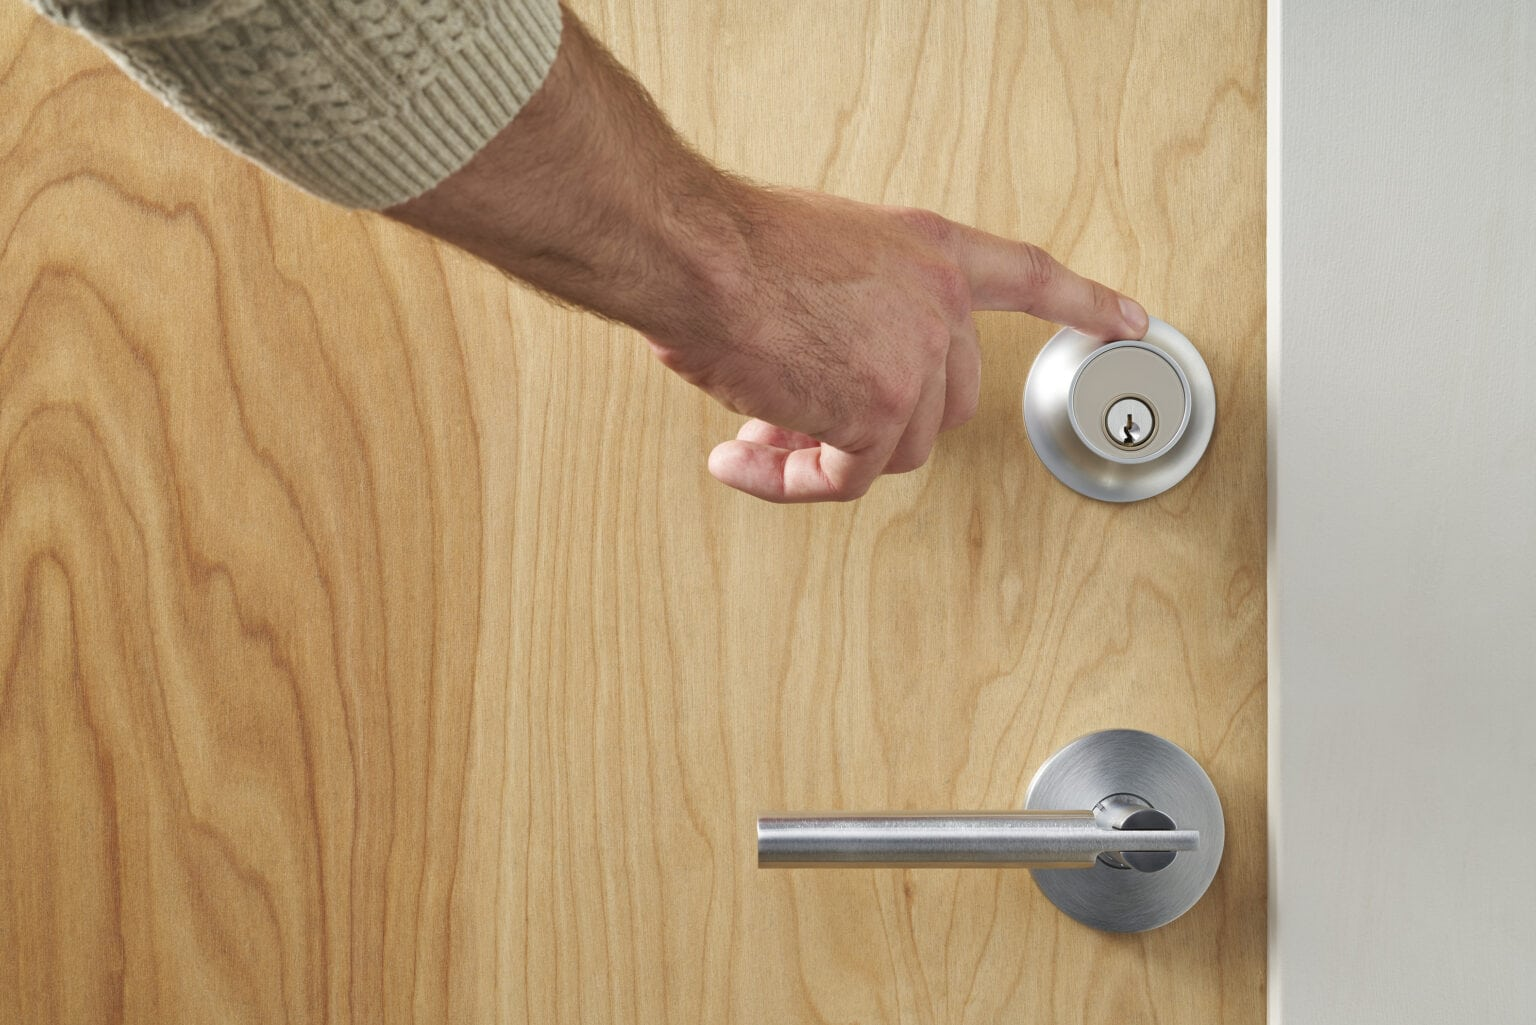 The new Level Touch smart lock opens with a touch -- and other ways, too.